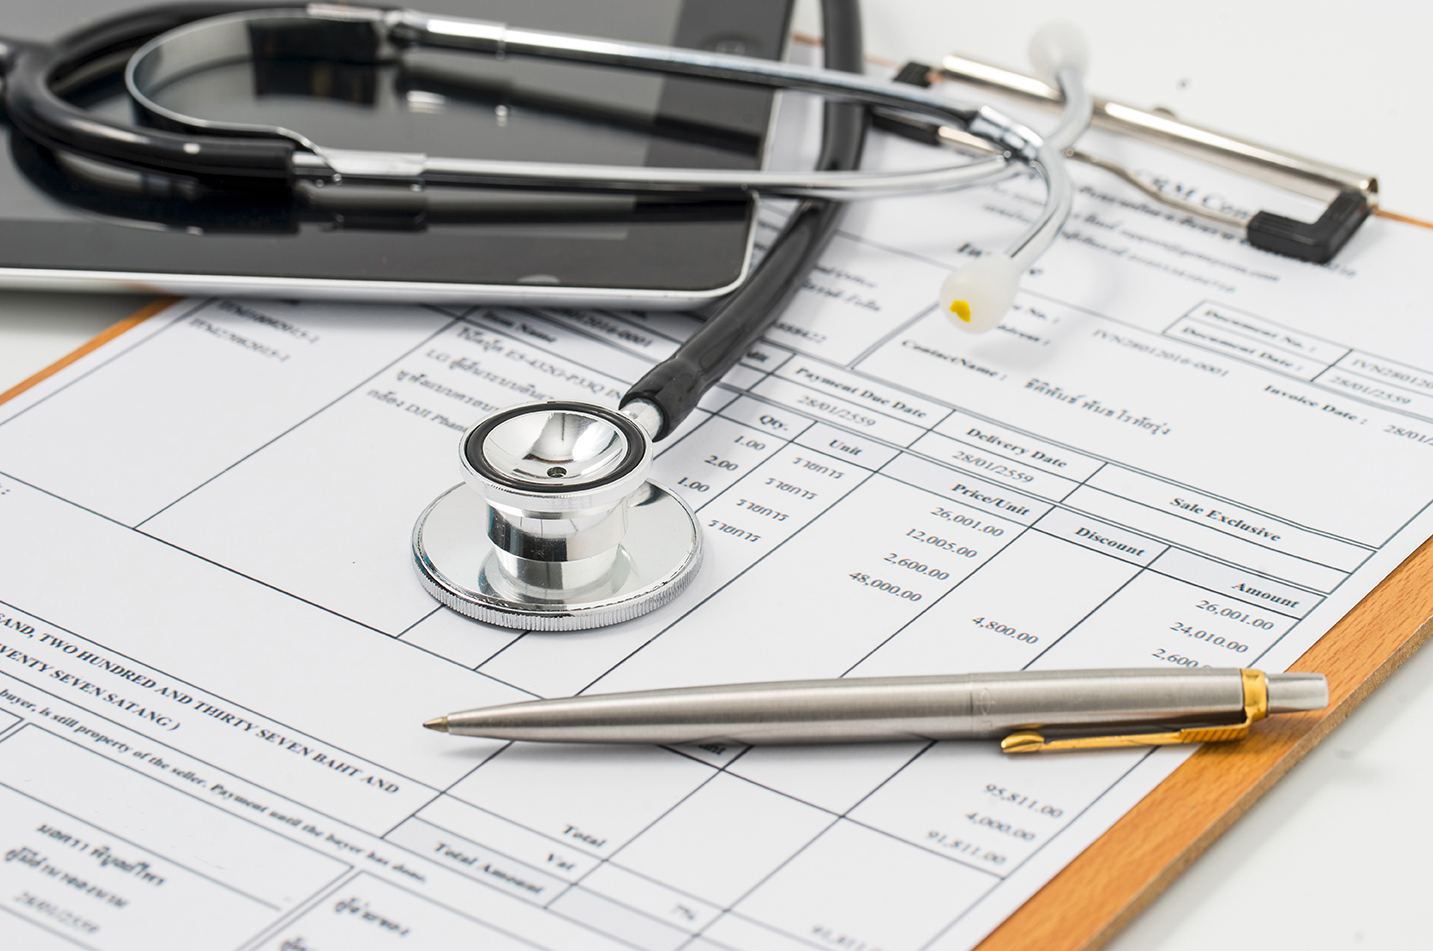 Online Medical Training School Helps Certify Students To Meet Booming Medical Coding Billing